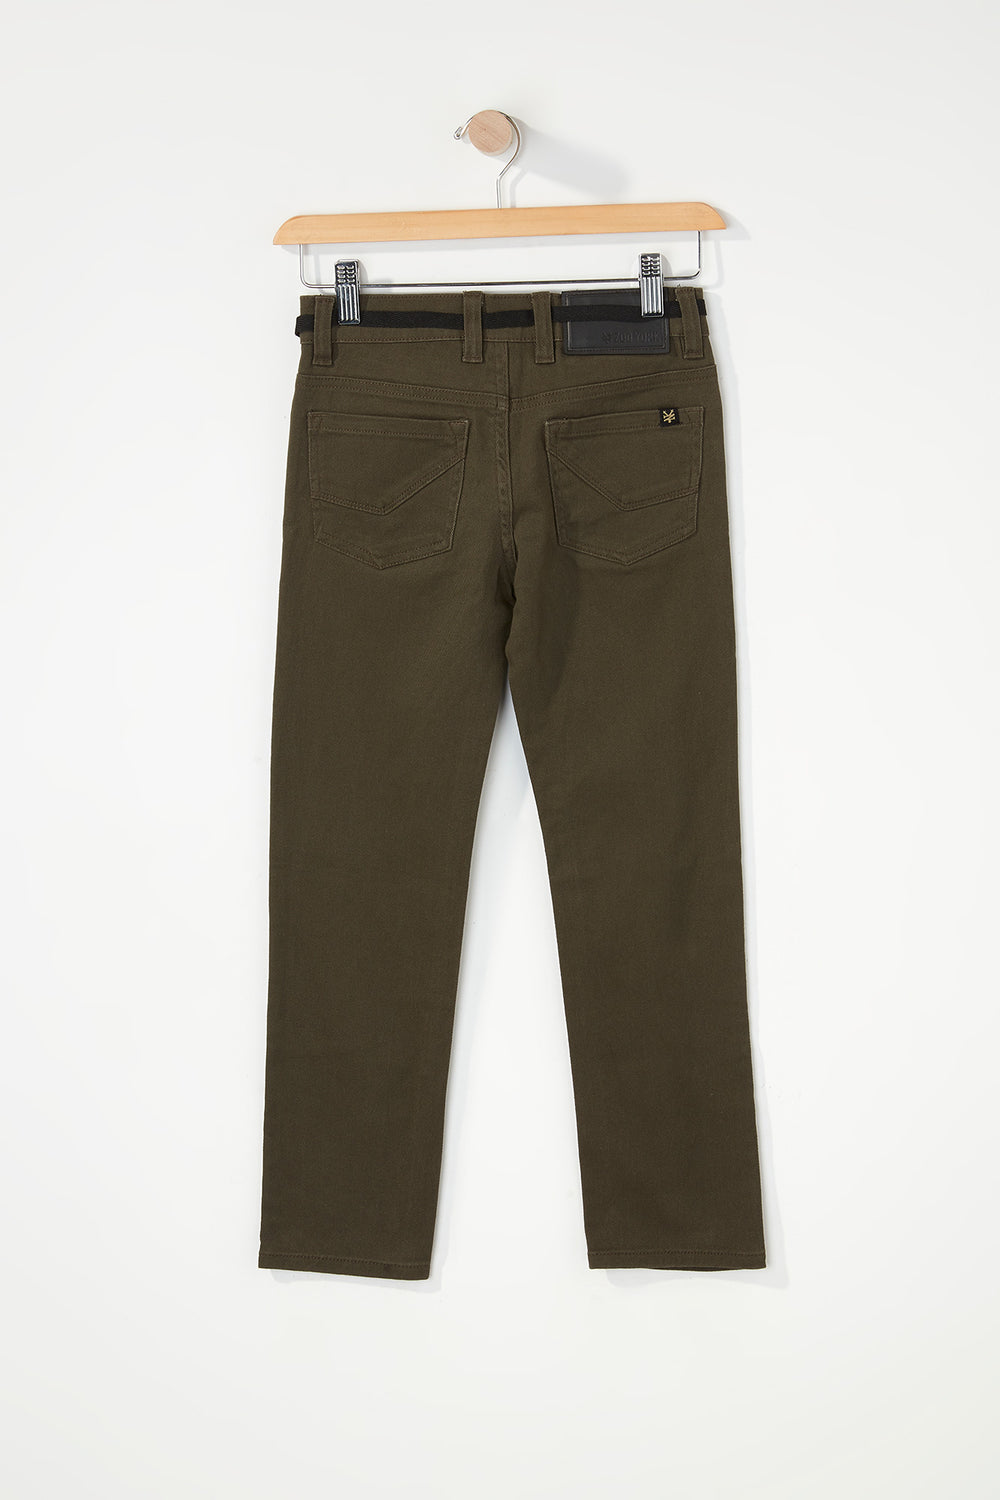 Zoo York Boys Stretch Skinny Jeans Khaki